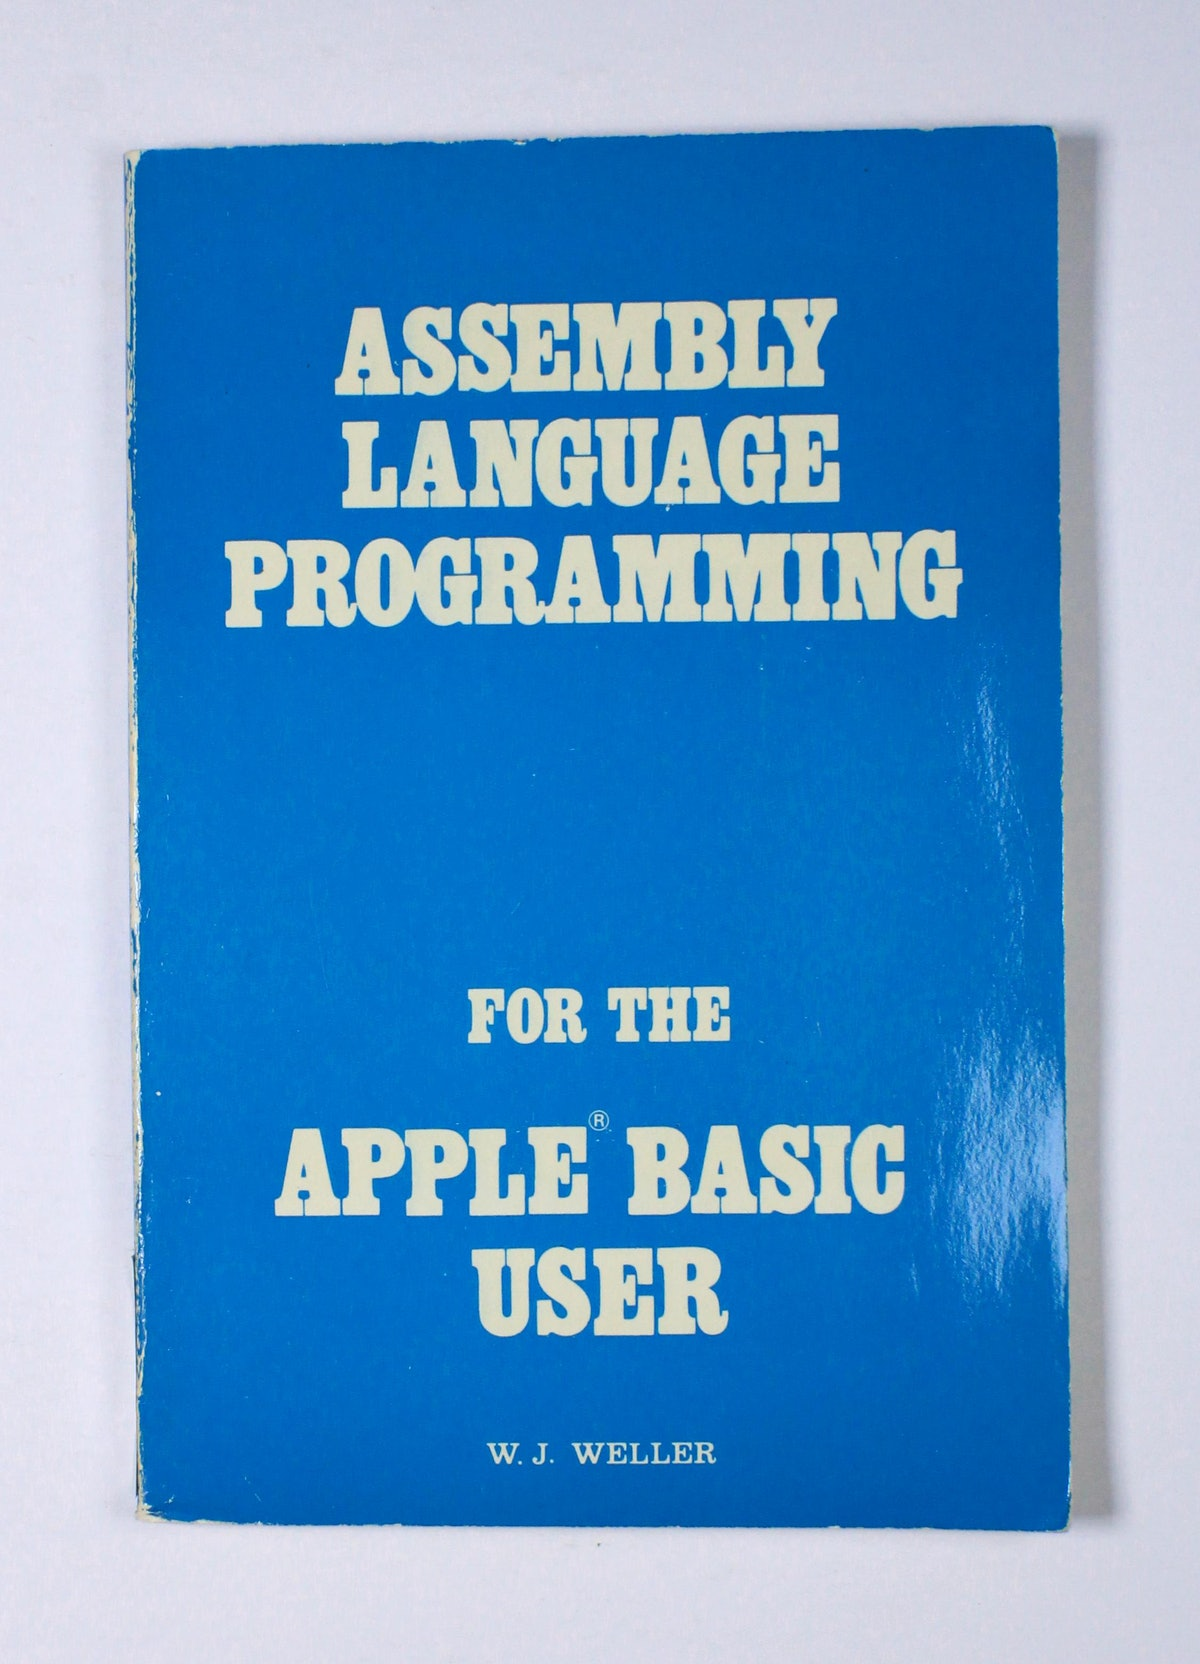 Assembly Language Programming for the Apple Basic User